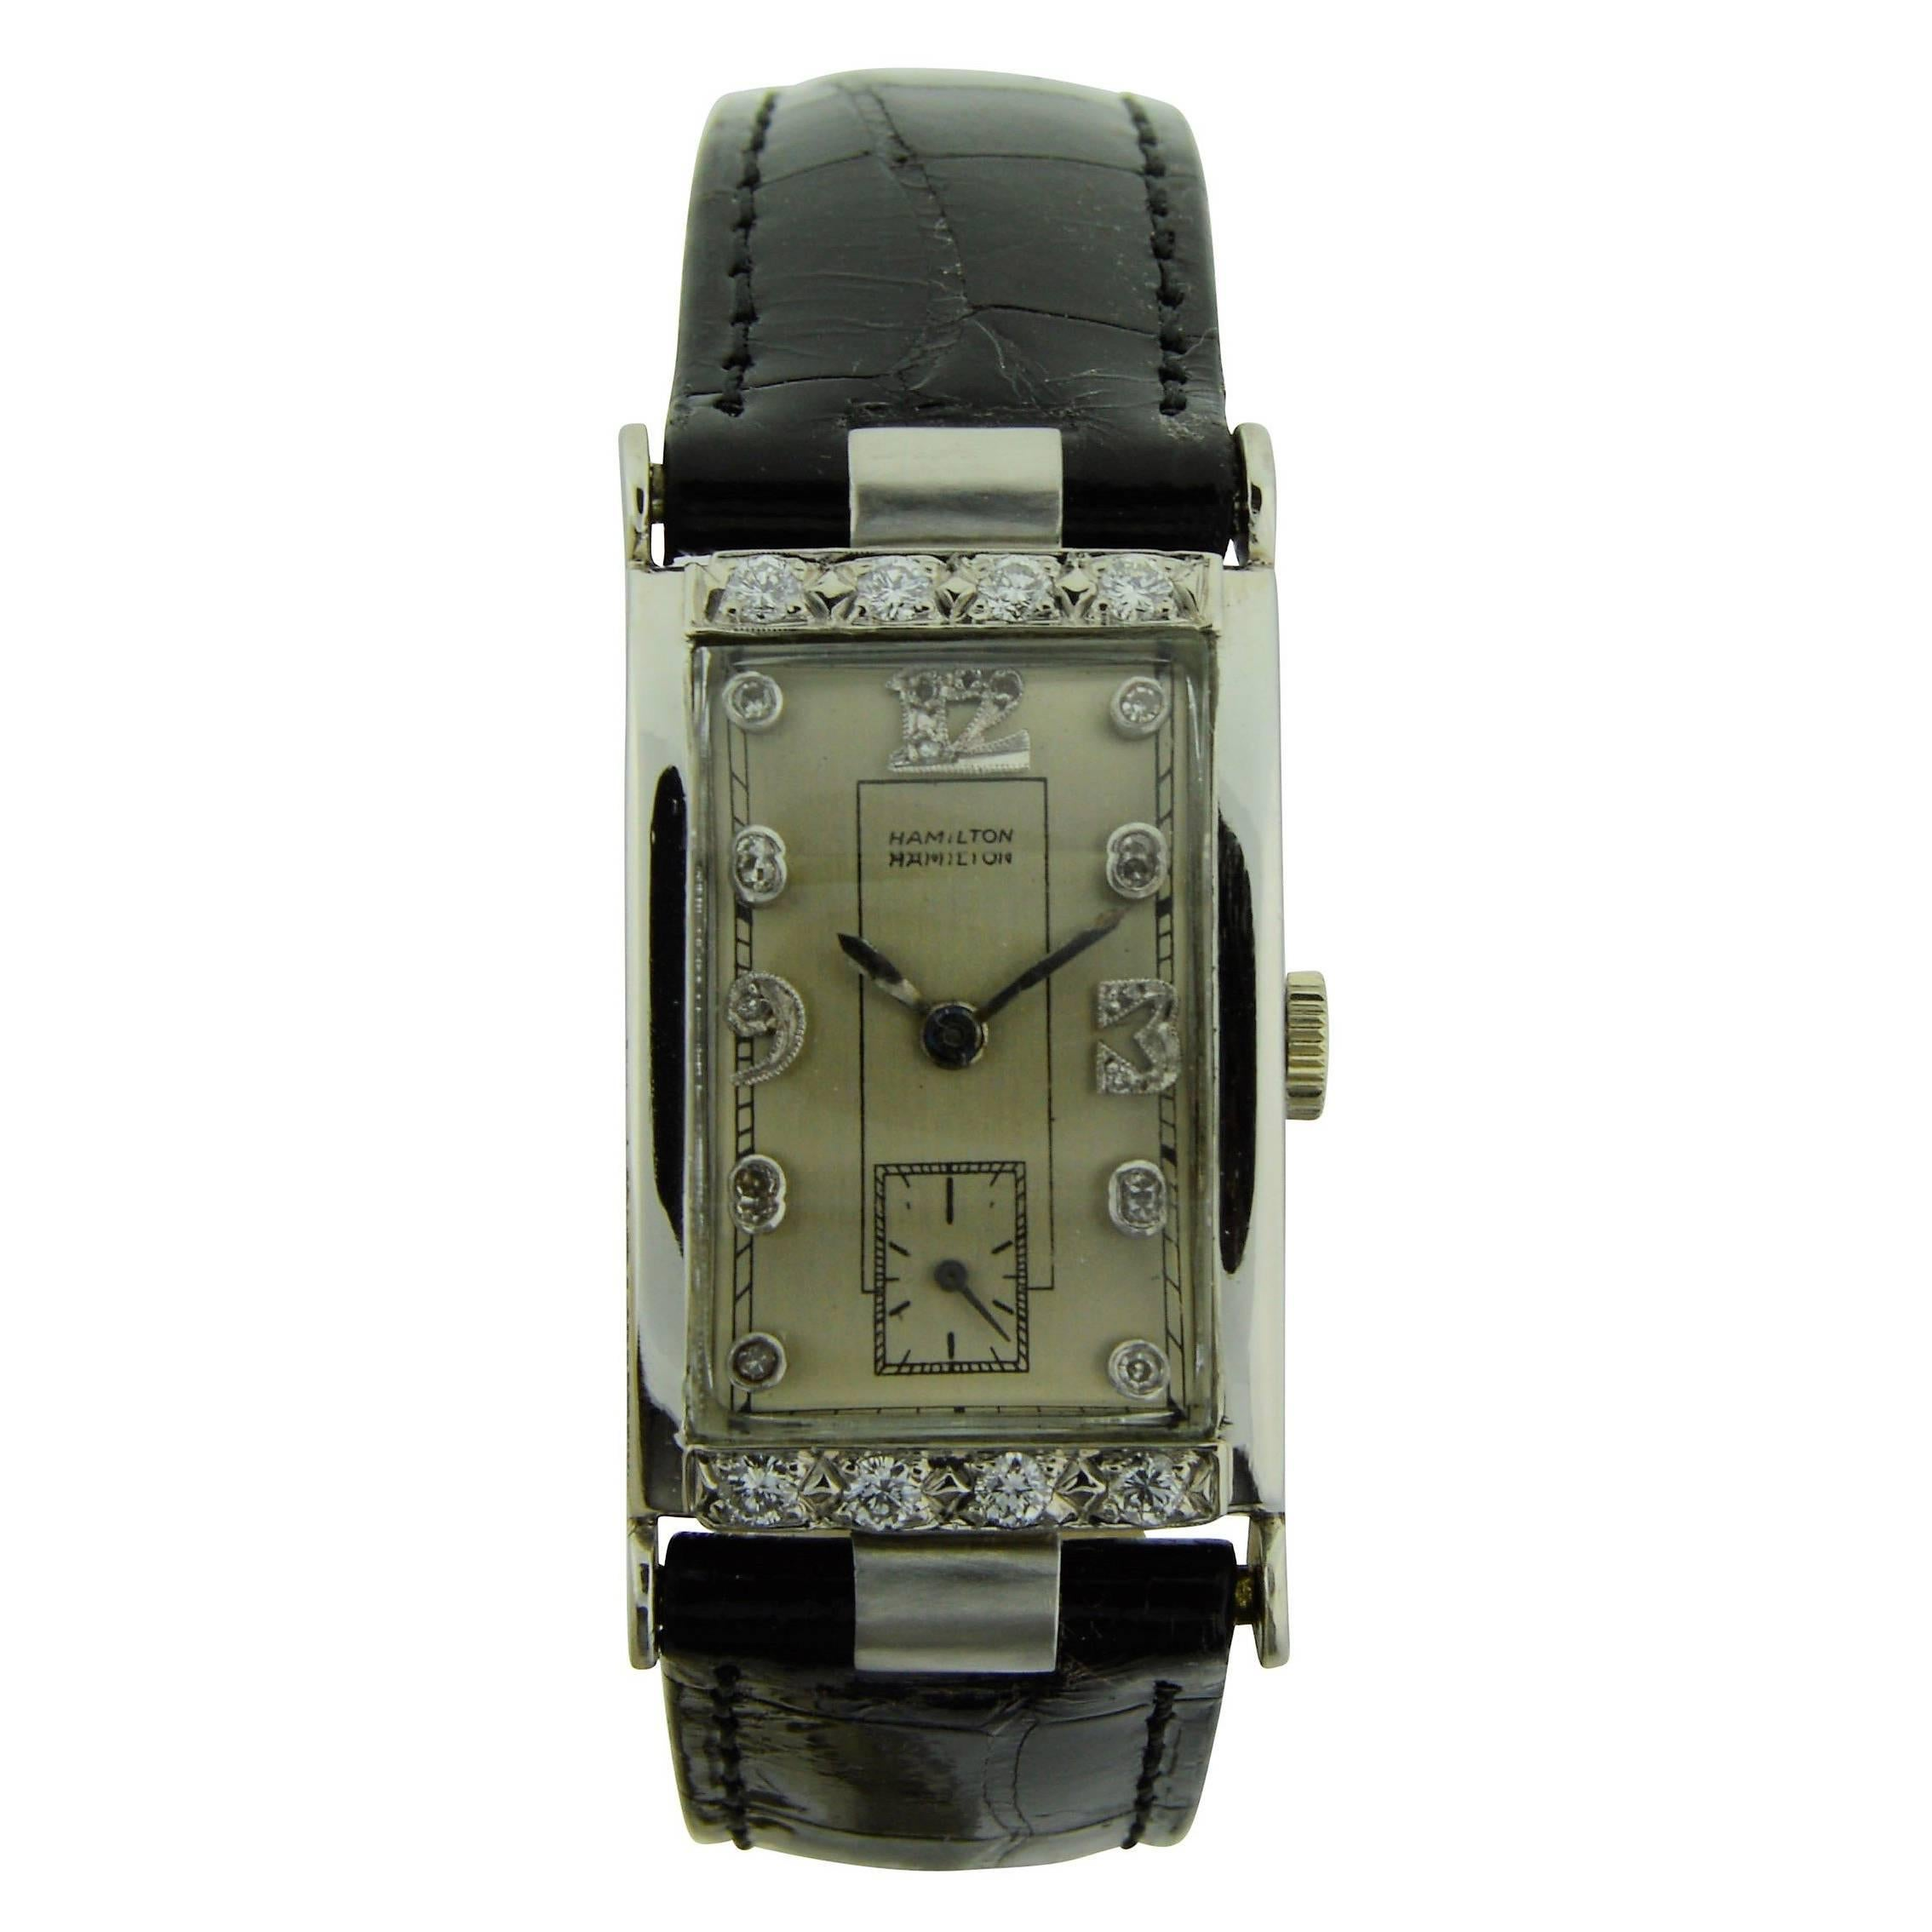 watch lyst in product black accessories for stainless steel armani men watches rectangular emporio gallery